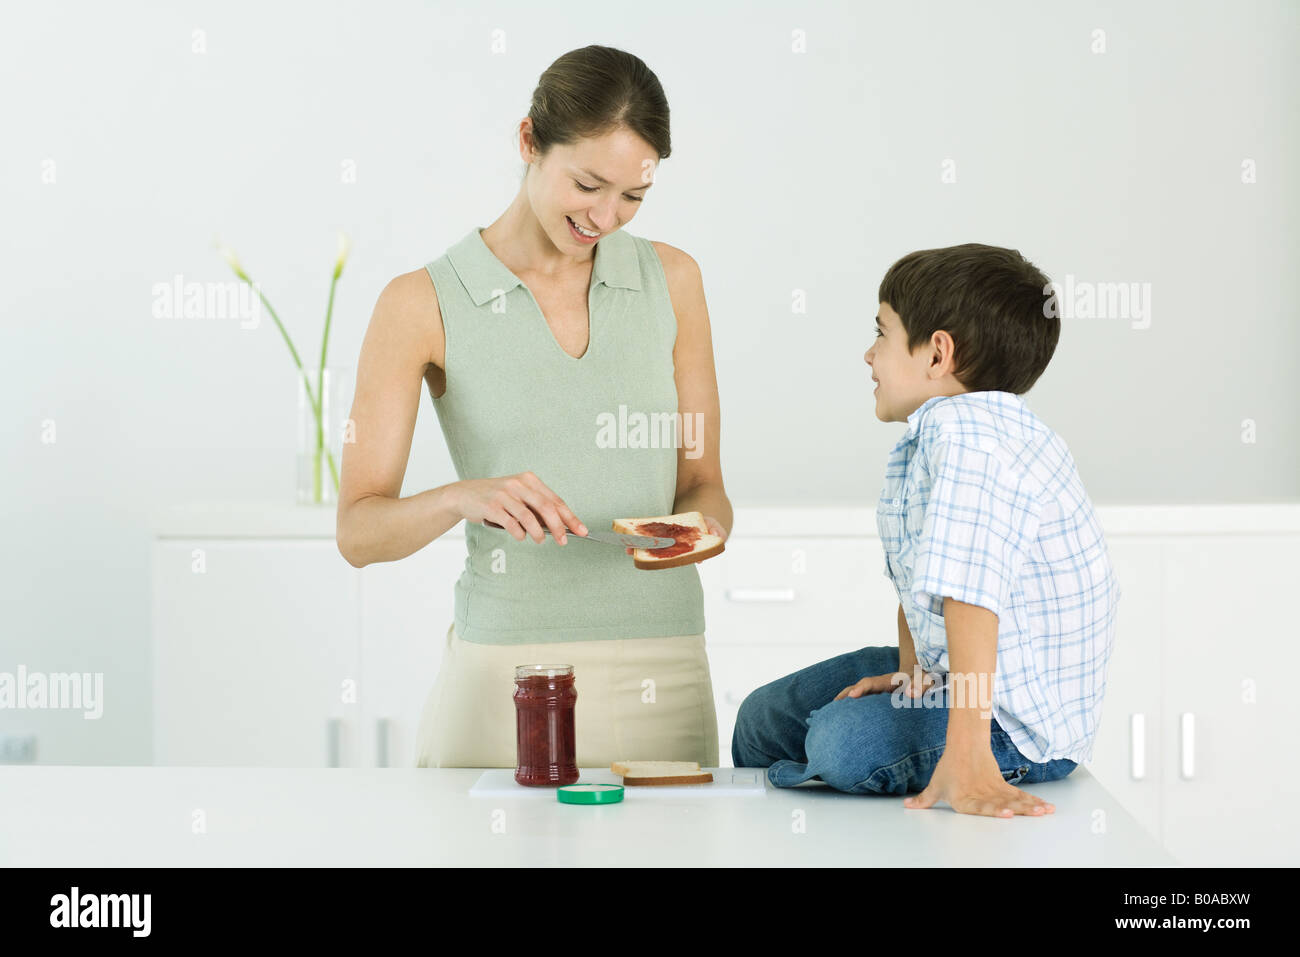 Mother spreading jam on bread, chatting with young son - Stock Image